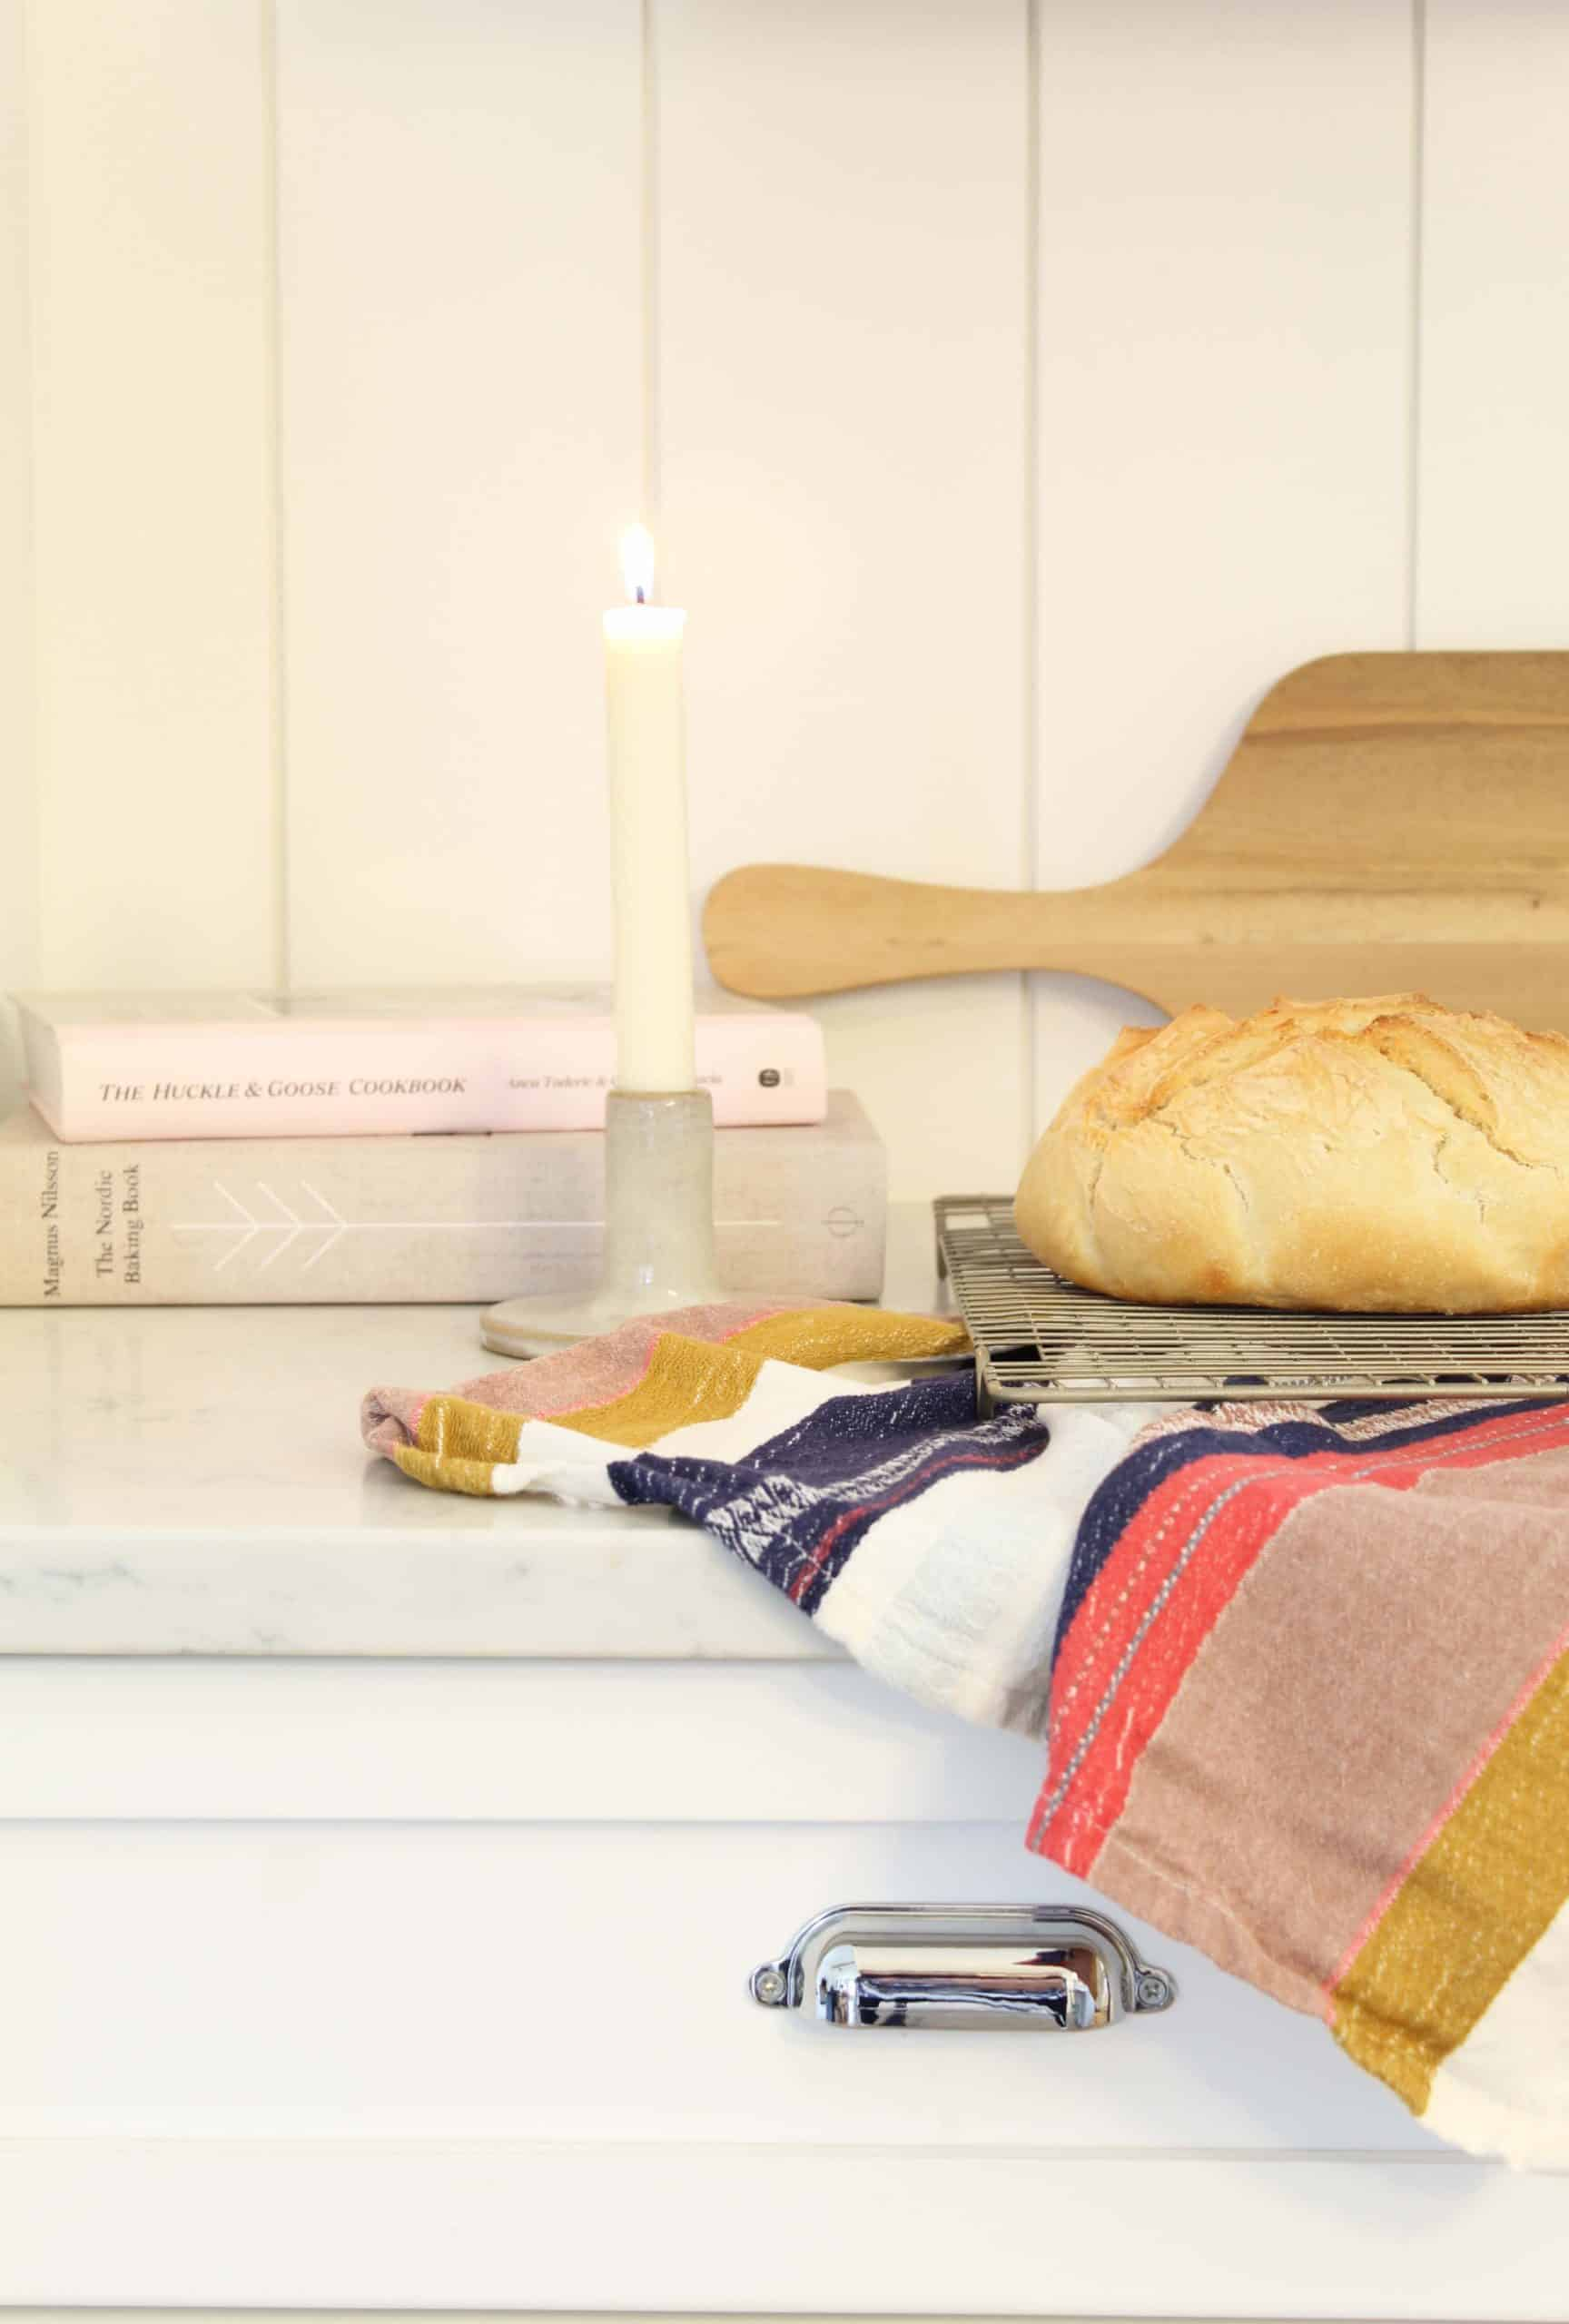 fresh sourdough bread, anthropologie kitchen towel, beeswax candle, huckle and goose cookbook